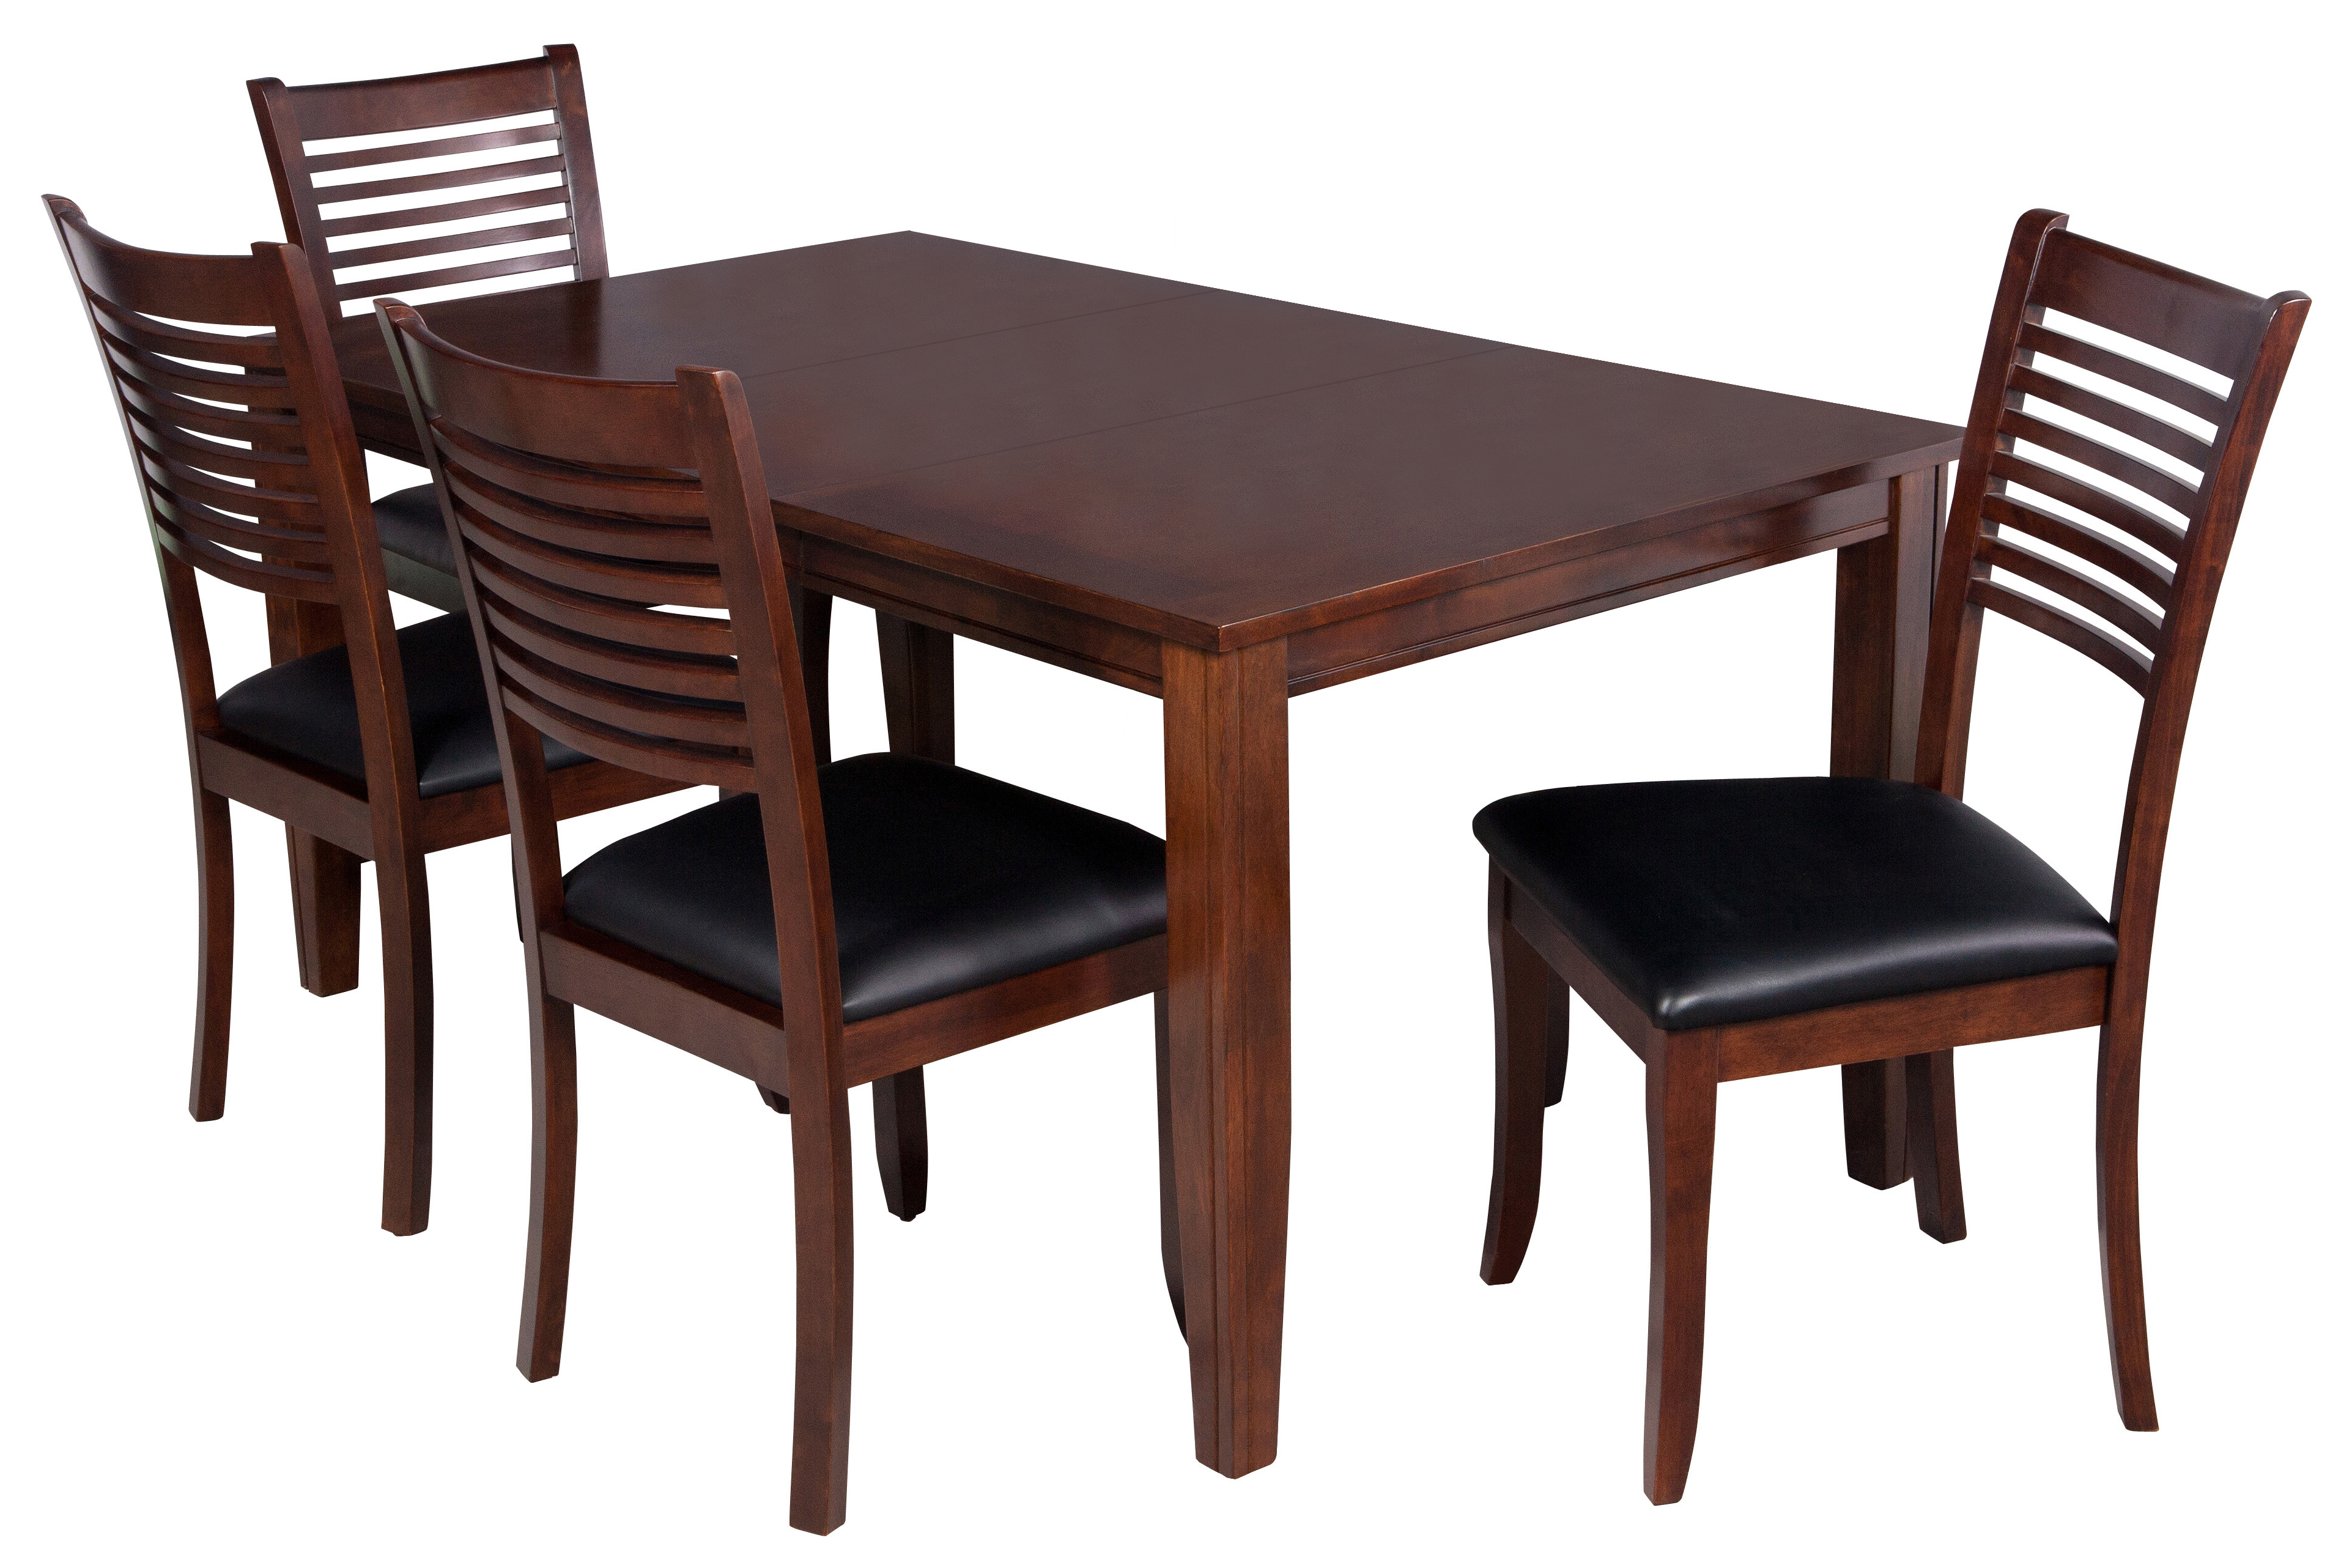 Ttp Furnish Within Well Liked Adan 5 Piece Solid Wood Dining Sets (Set Of 5) (View 14 of 25)